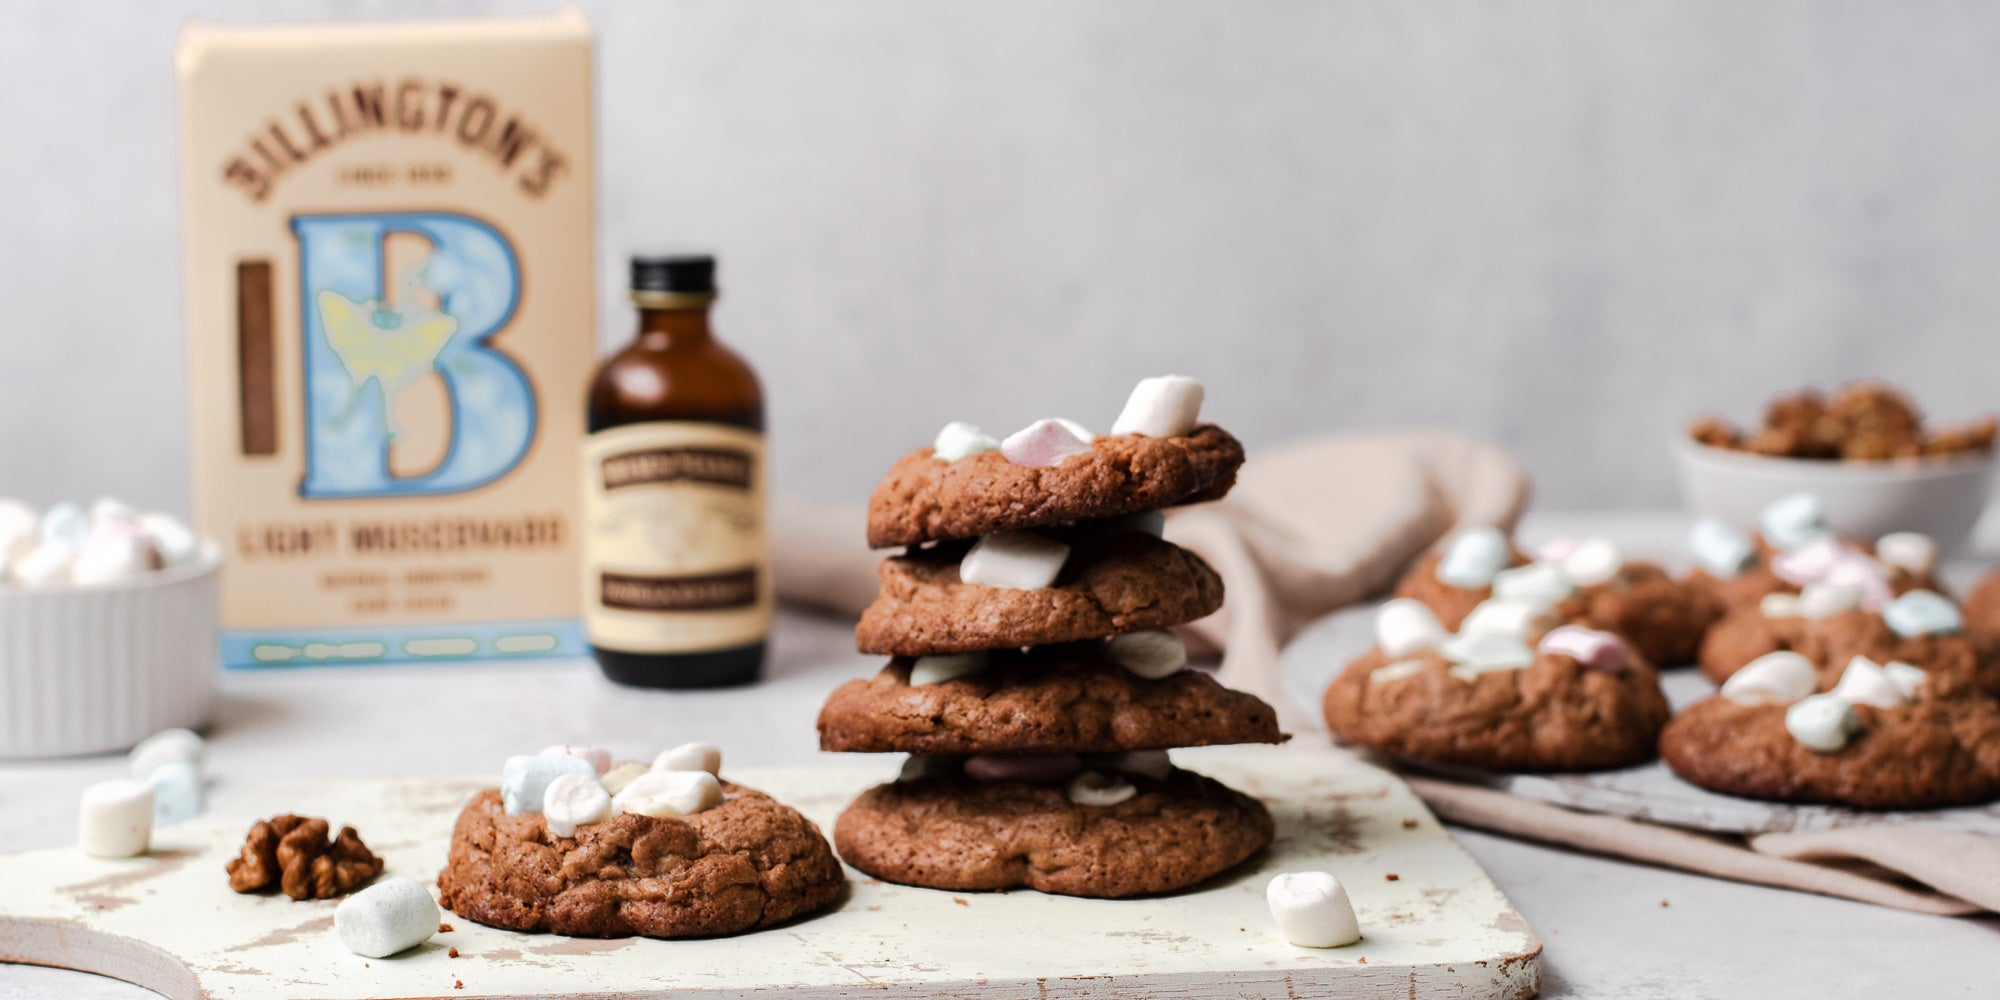 Rocky Road Cookies stacked on top of each other on a serving board, next to a bottle of Neilsen-Massey Vanilla extract, with a box of Billington's Light Muscovado sugar behind